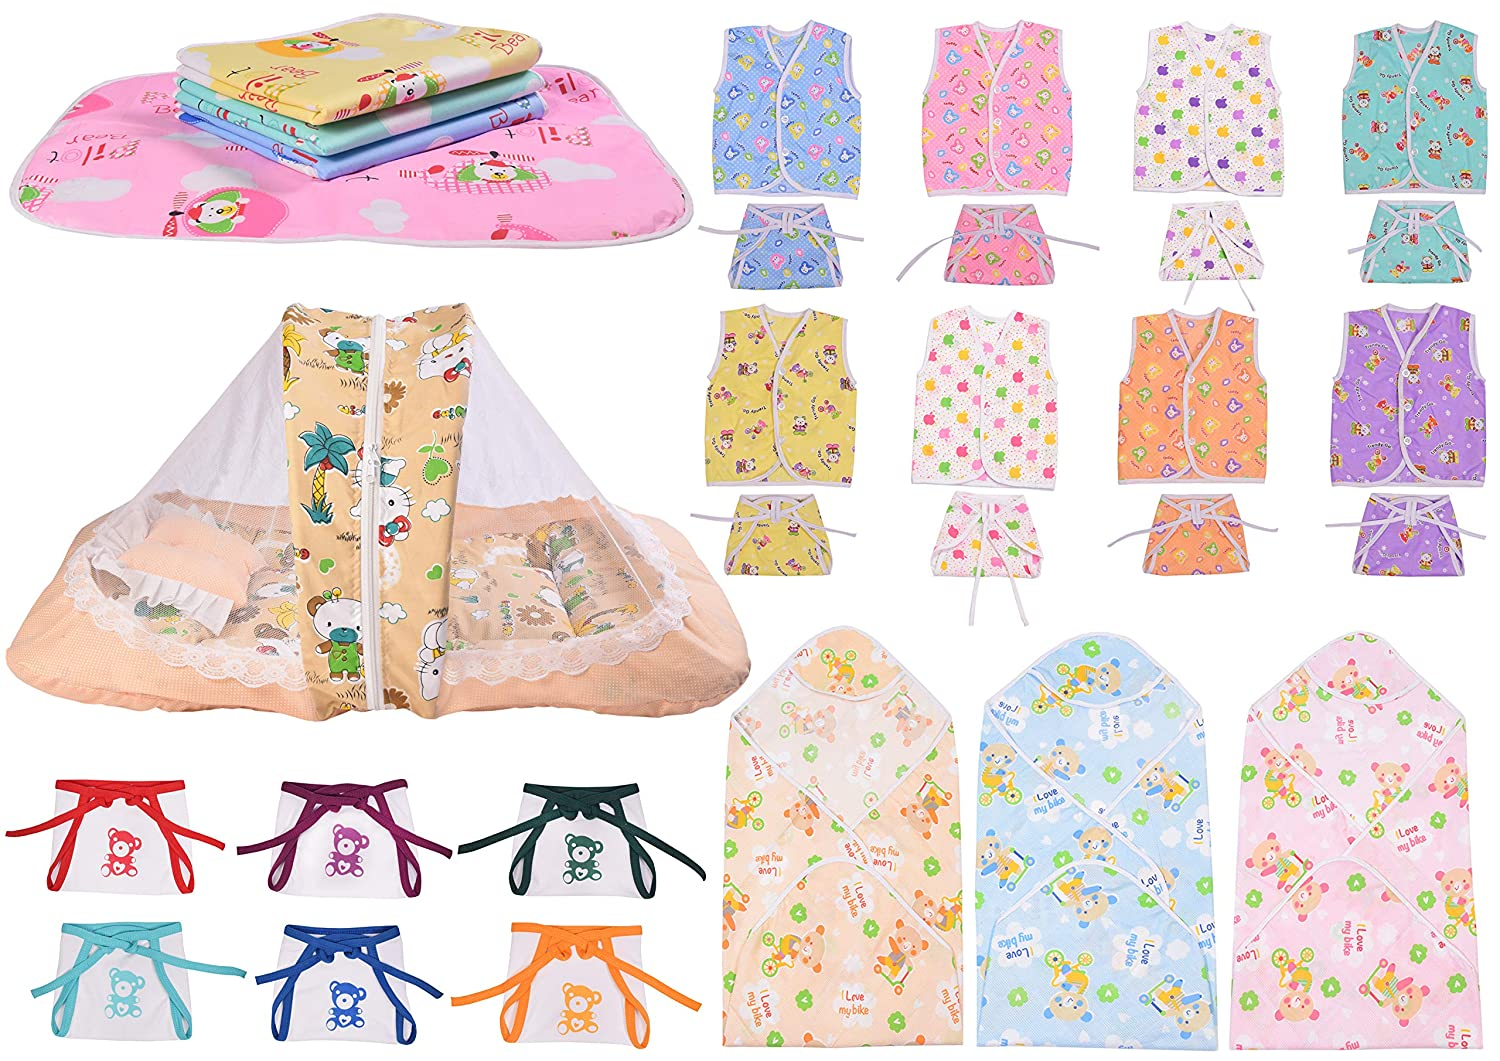 Baby Fly Newborn Baby Combo of 8 Cotton Jhabla with 8 Cotton Nappies, 1 Net Bed, 6 Hosiery Nappies, 3 Blankets for Baby and 4 Plastic Sheet Waterproof (0-6 Months)